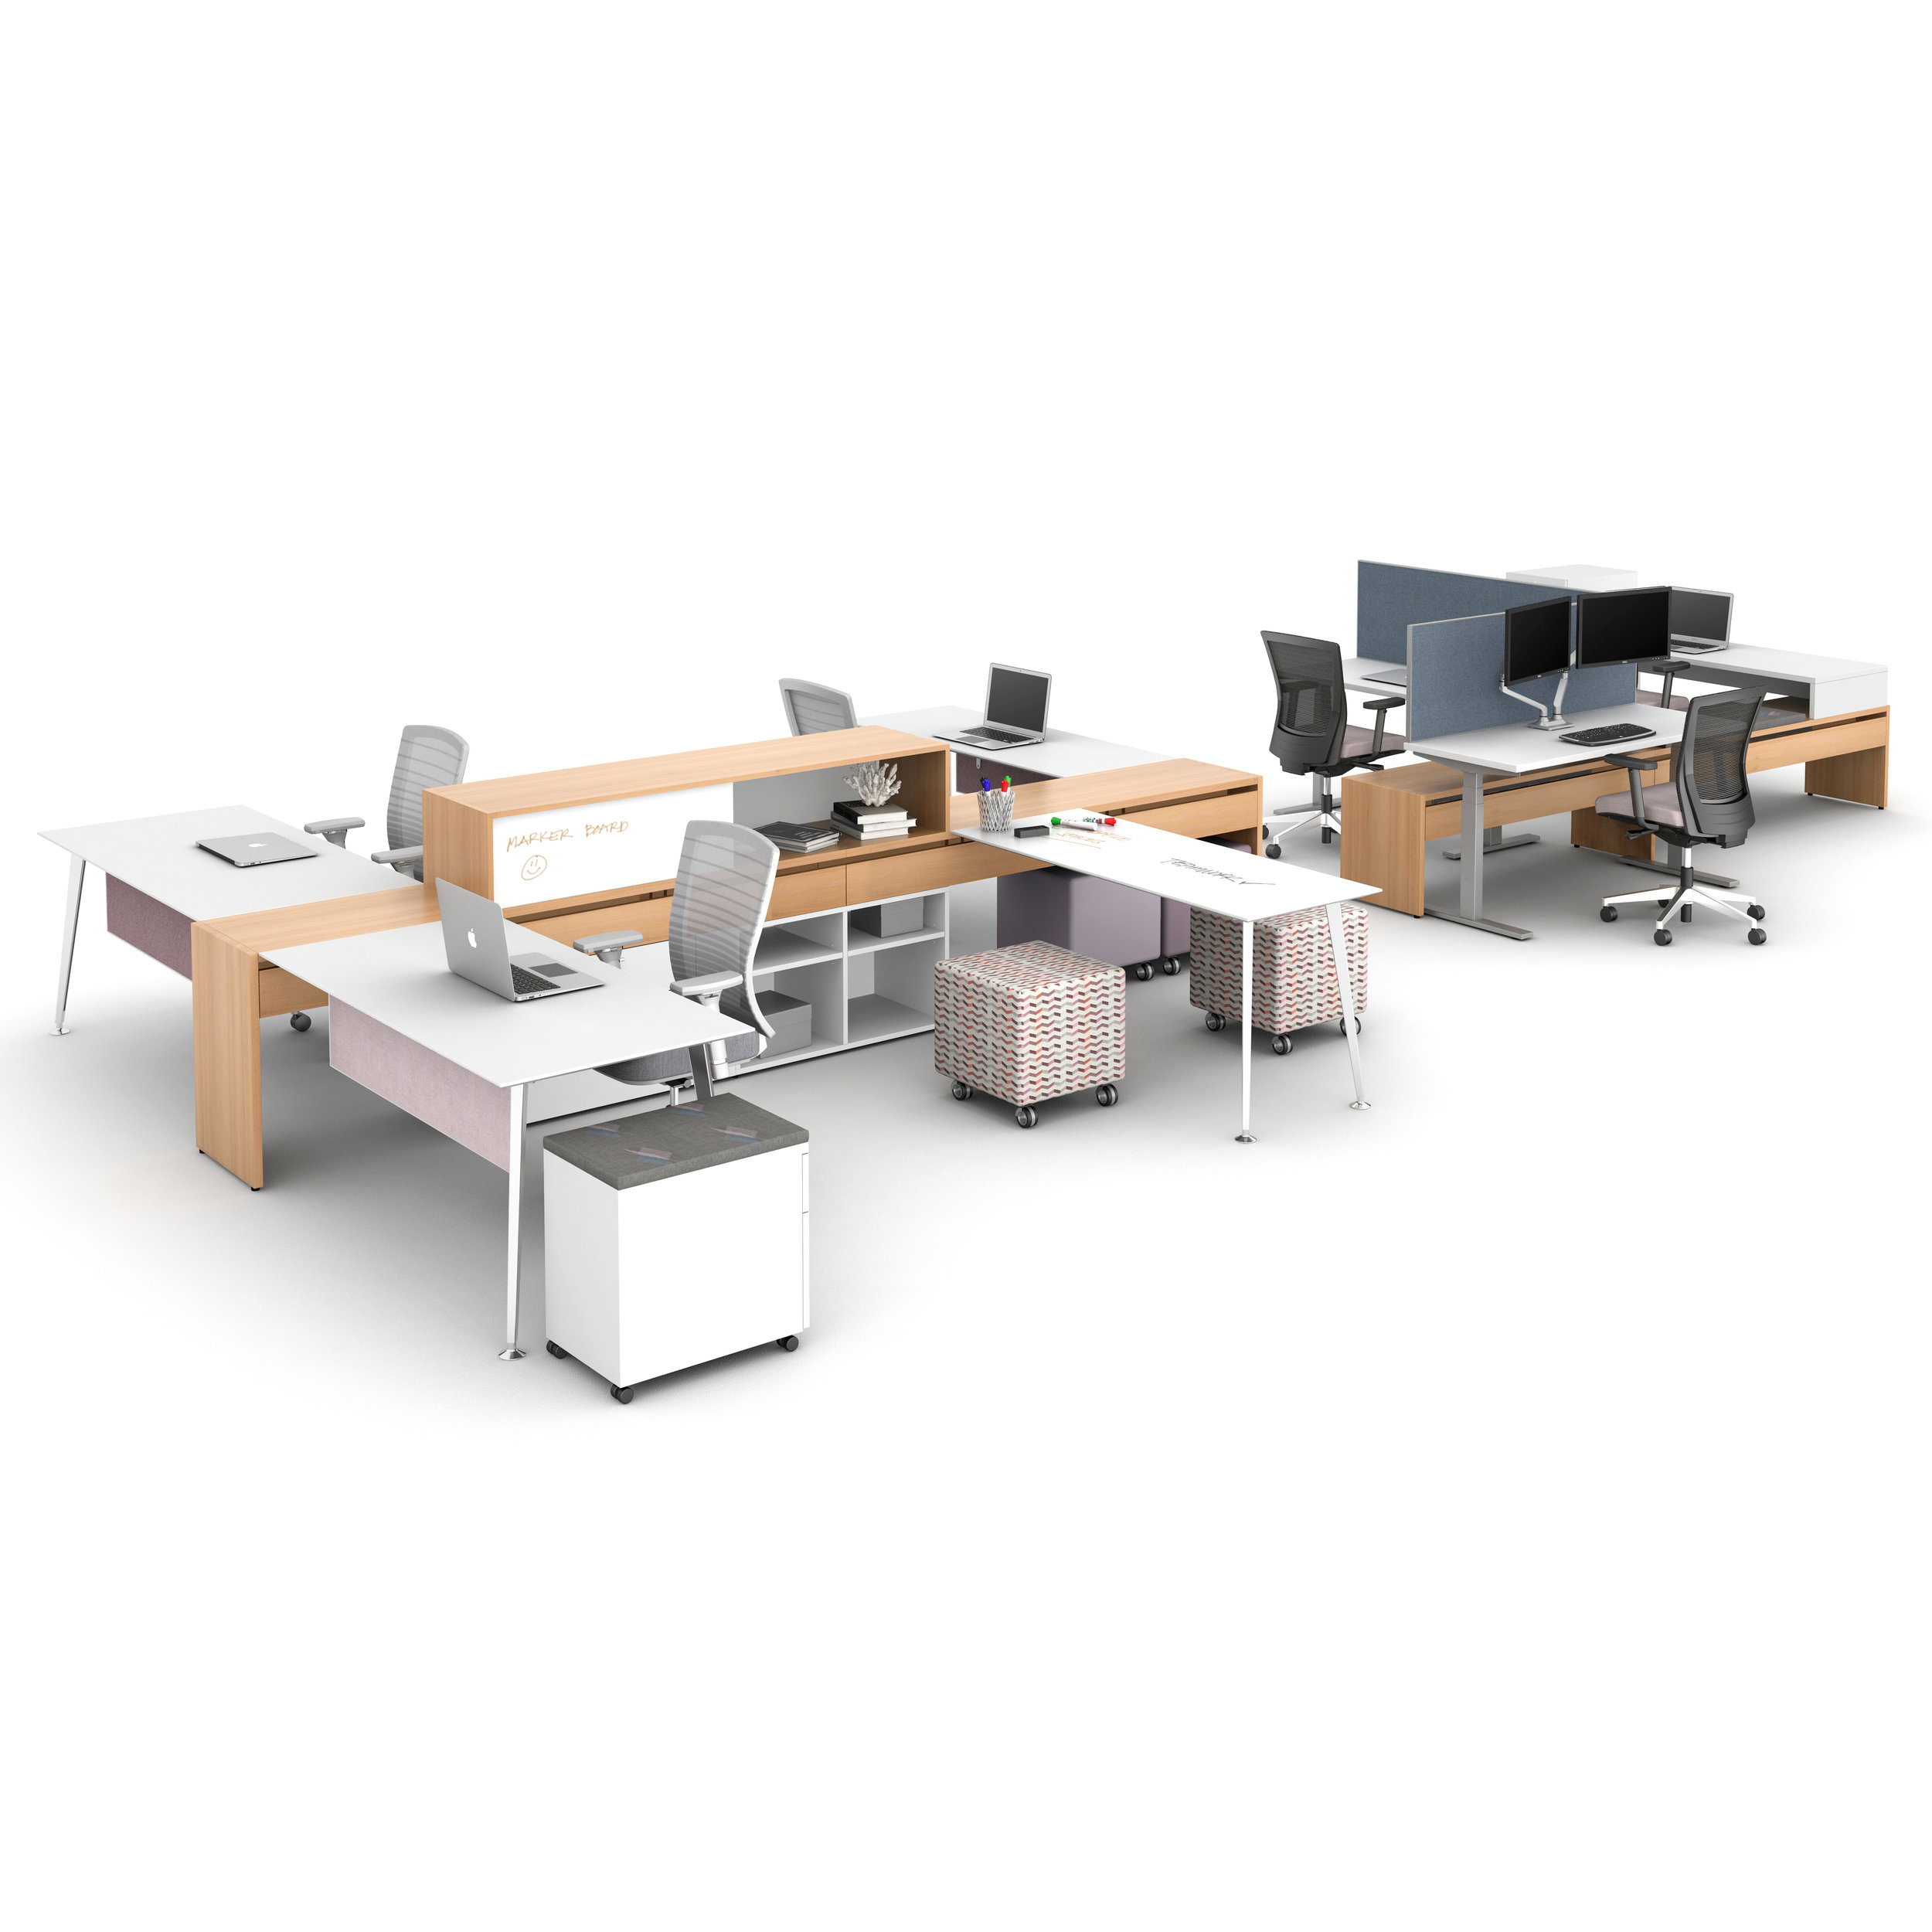 calibrate-series-community-open-plan-workstations-with-upton-and-natick-task-seating-and-volker-impromtu-seating_md.jpg